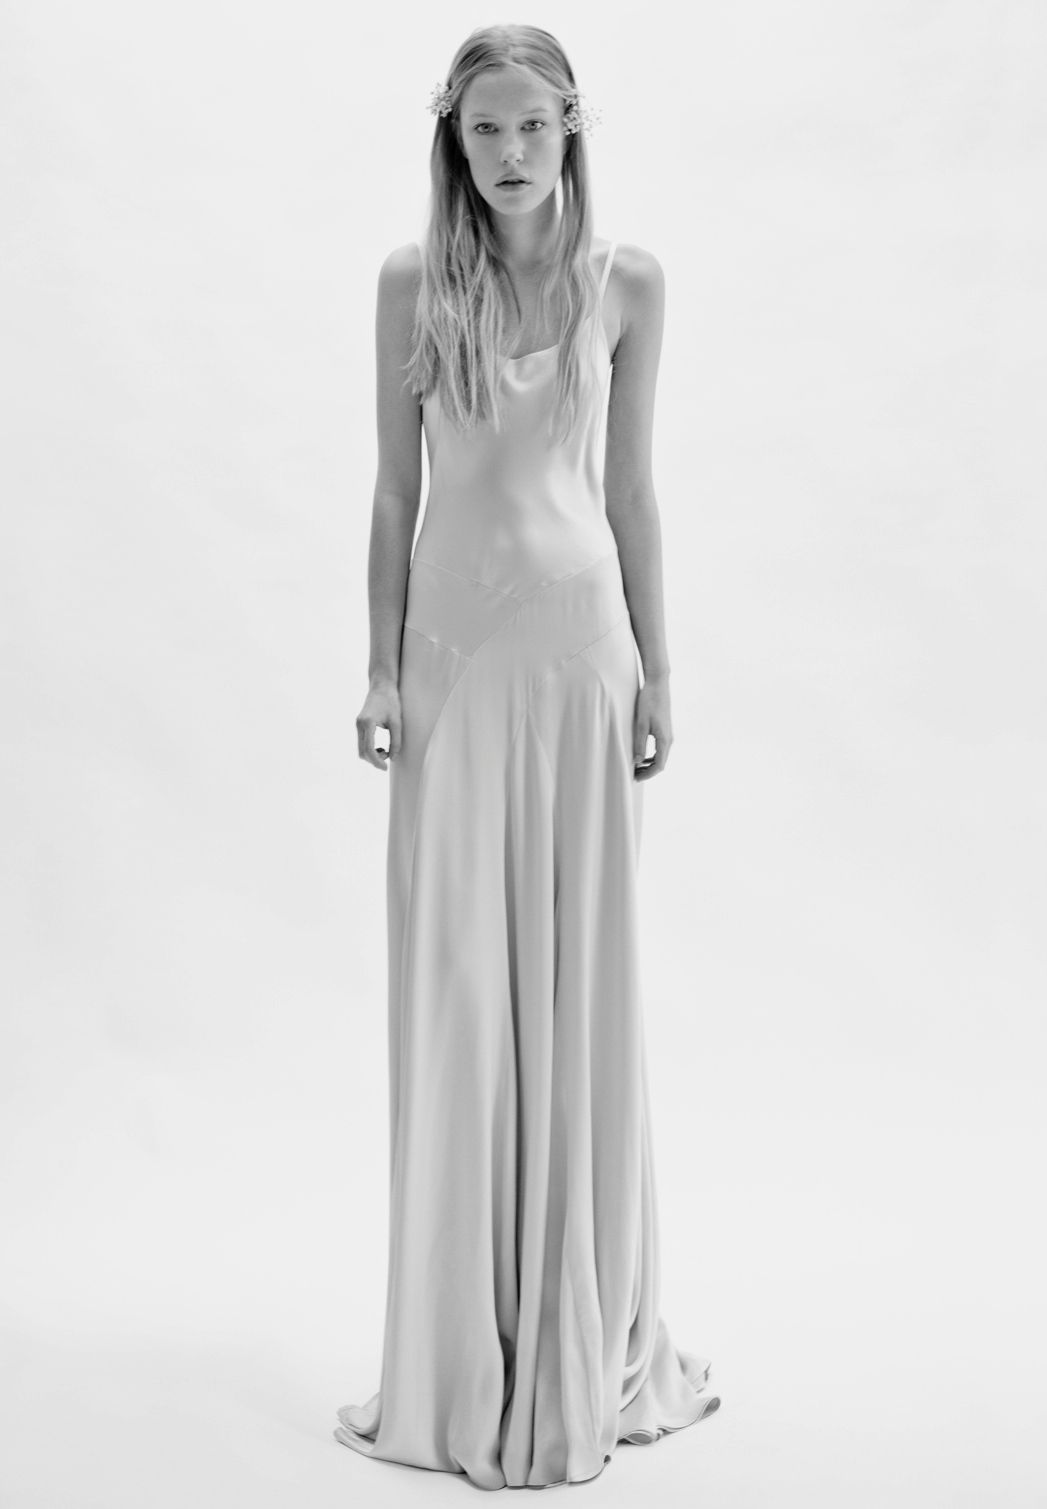 Pin by jamie fanton on dress up pinterest simple gowns minimal